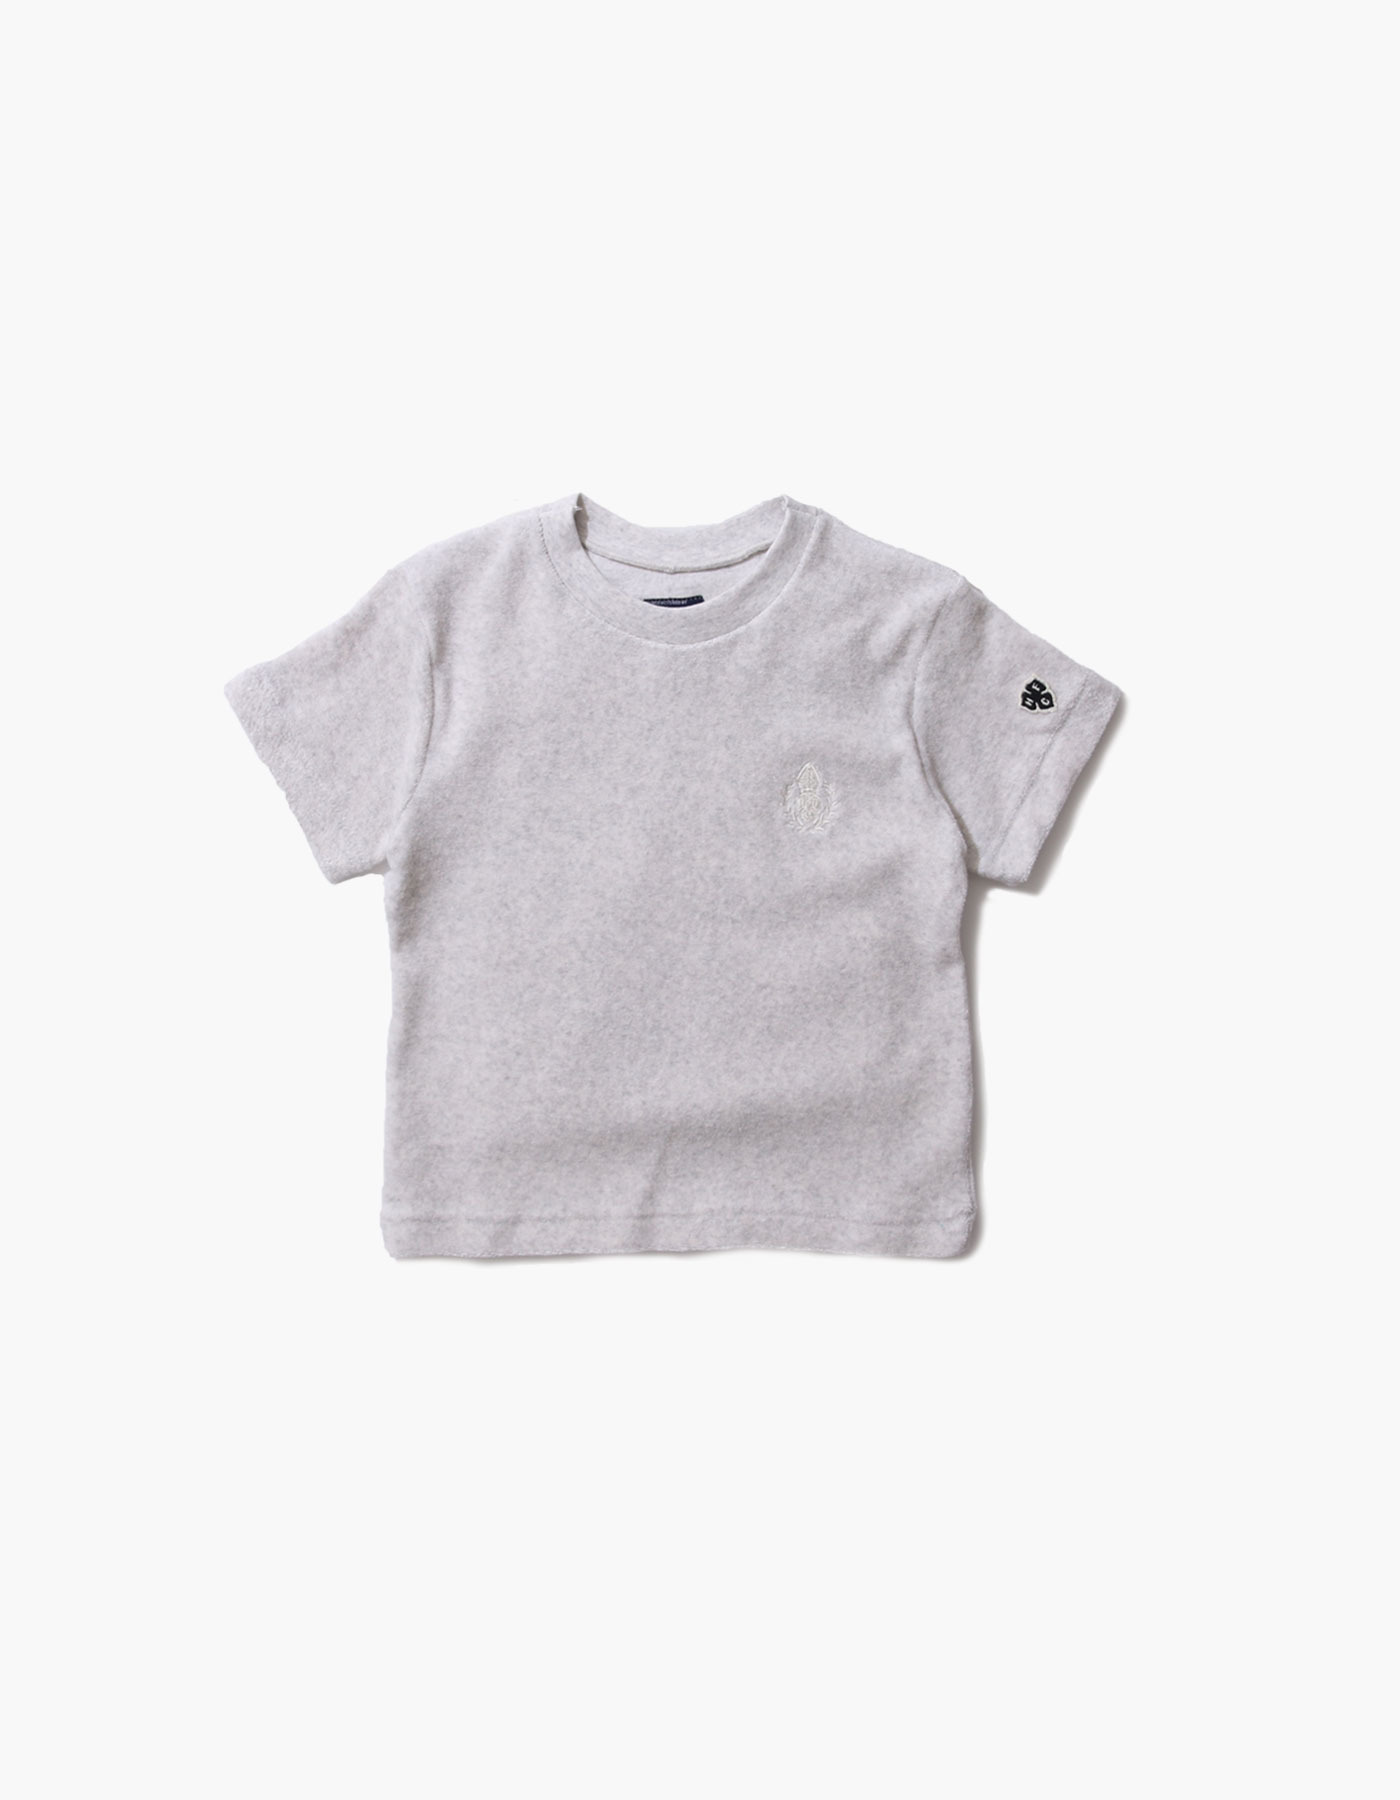 HFC CREST KIDS TOWEL T-SHIRTS / M.GREY(1%)